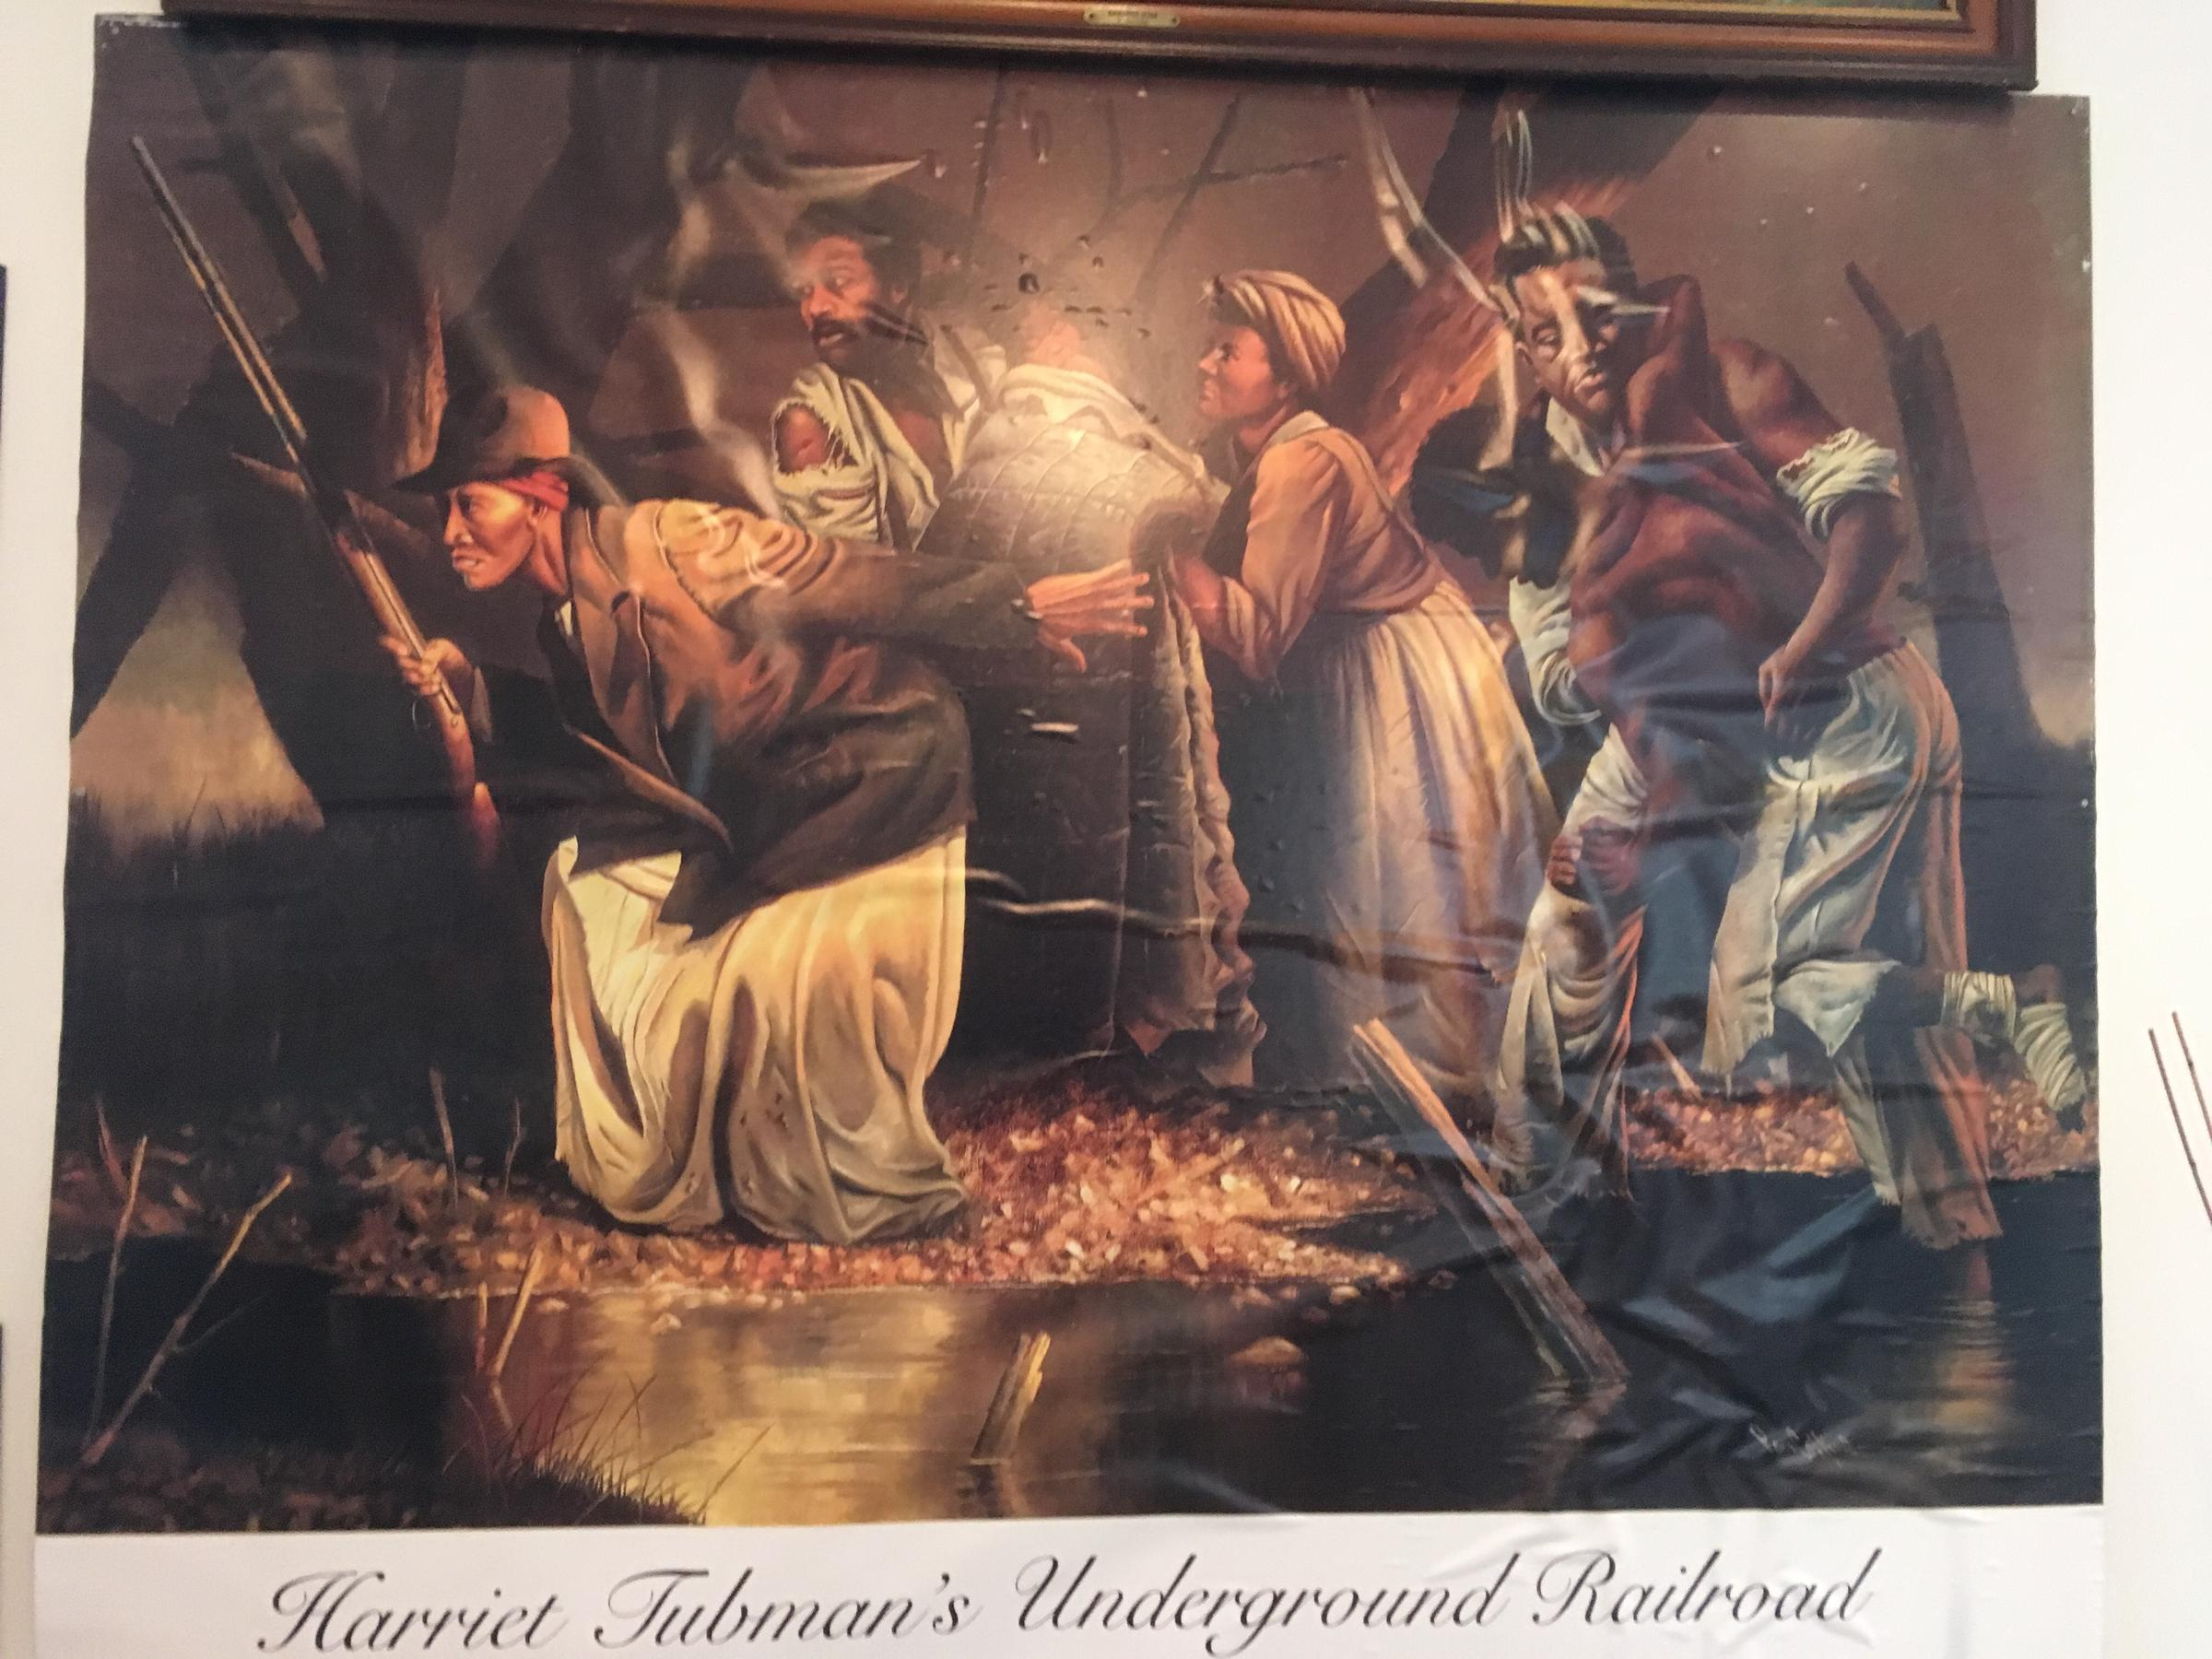 a report on harriet tubman and the construction of the underground railroad in america Harriet tubman underground railroad visitor center — photo courtesy of national park service the new harriet tubman underground railroad visitor center commemorates one of america's most famed .